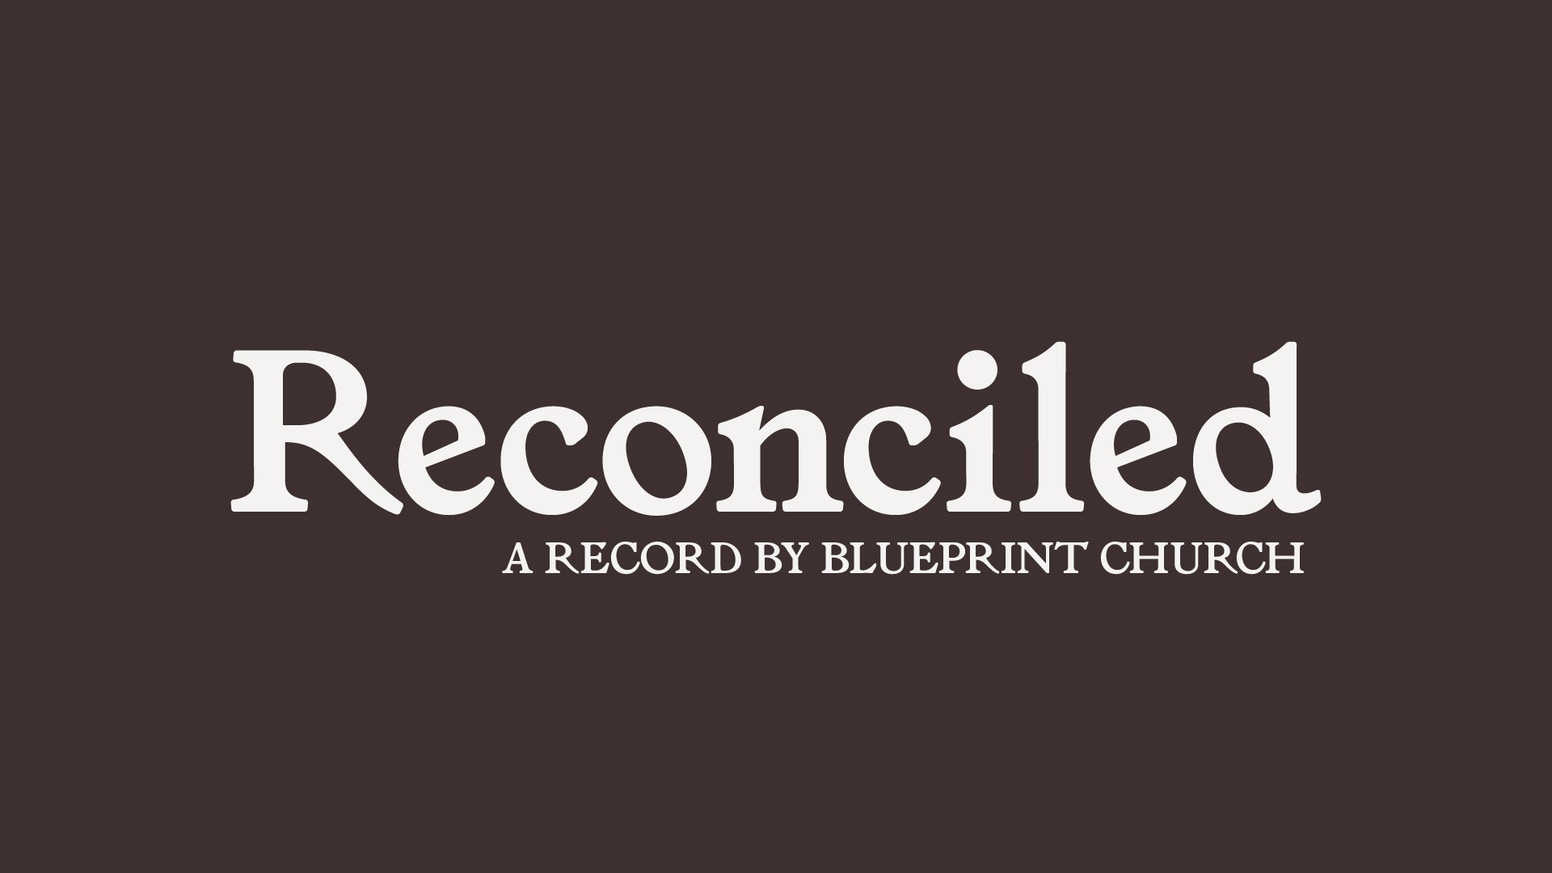 Reconciled a record by blueprint church by blueprint church weve recorded an album of songs from the last few years on our journey malvernweather Image collections